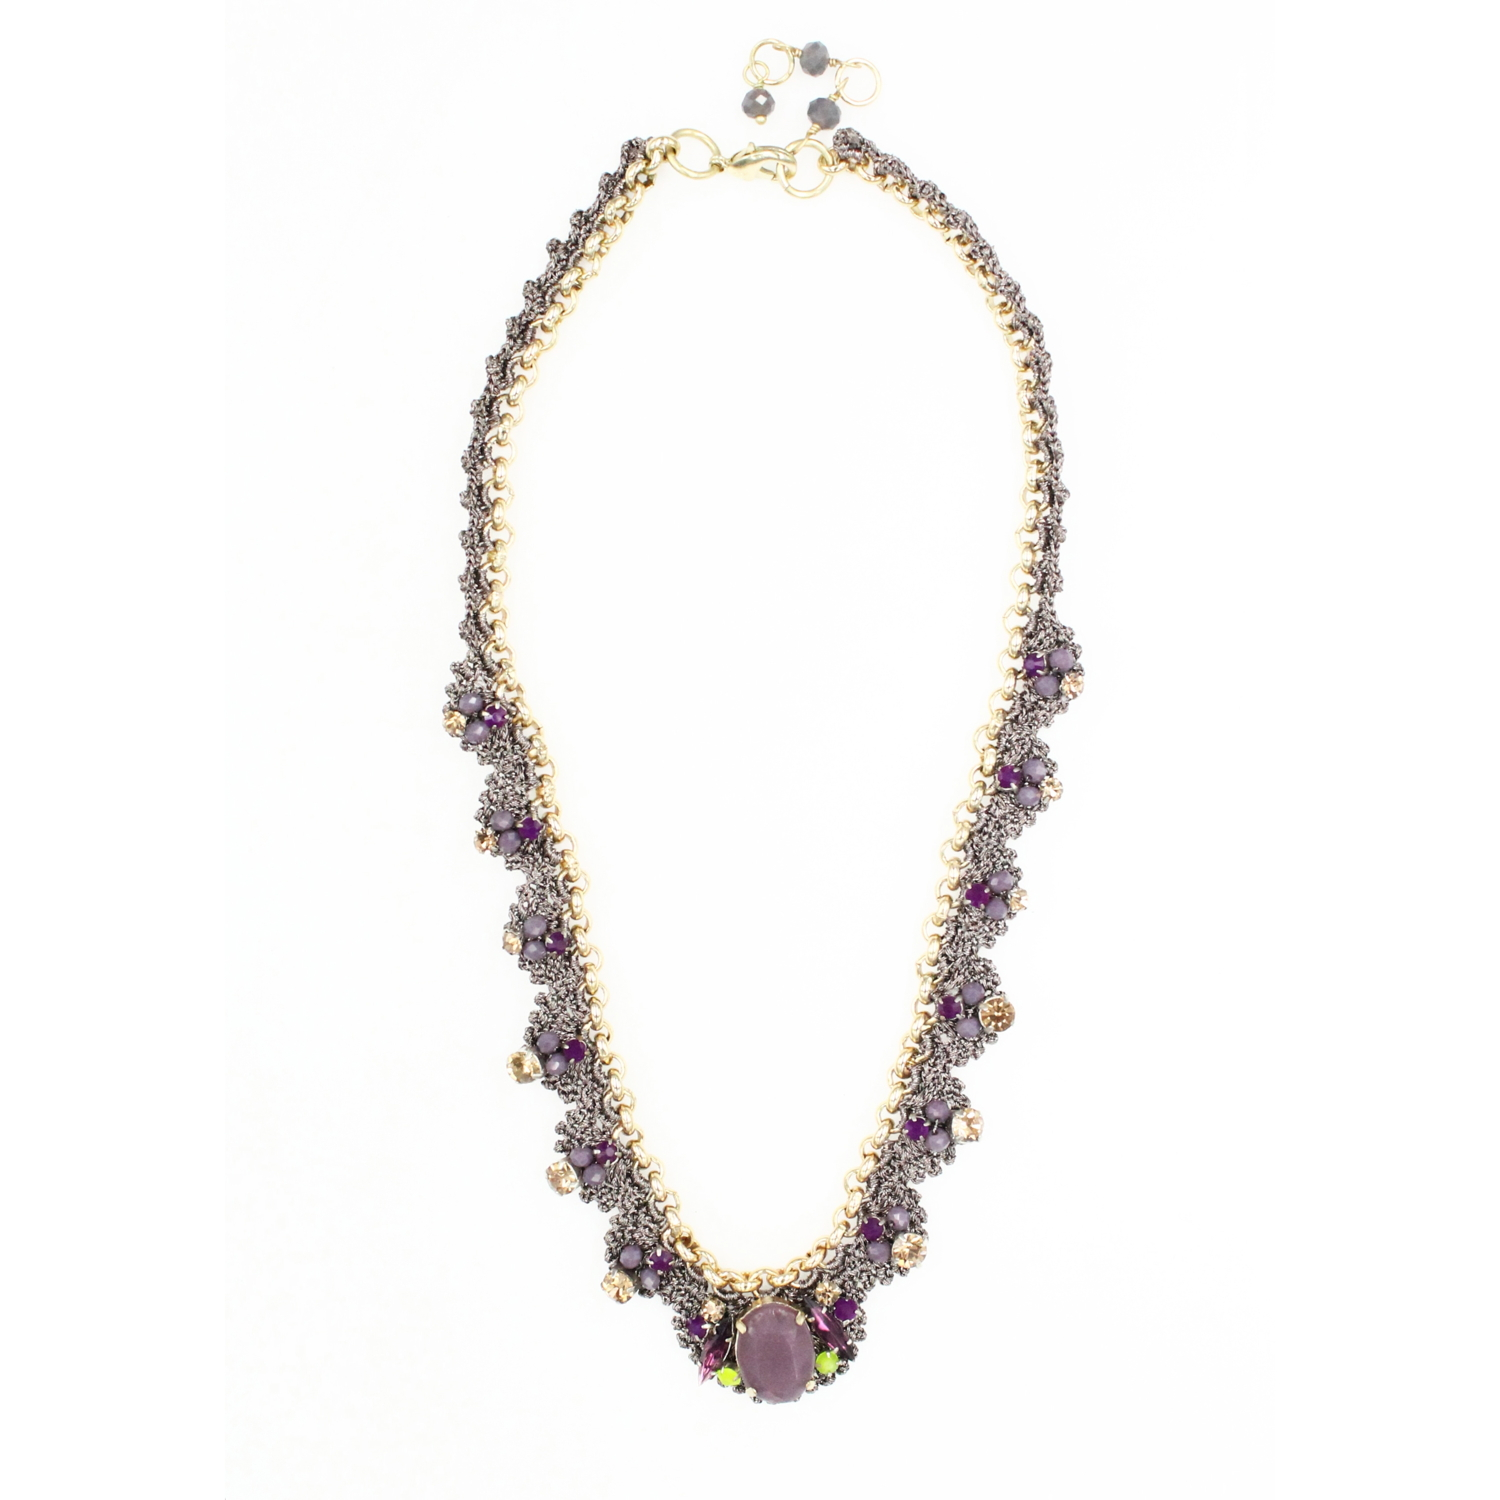 Frangipani Bejewelled Crochet Petal Necklace - Purple Grey